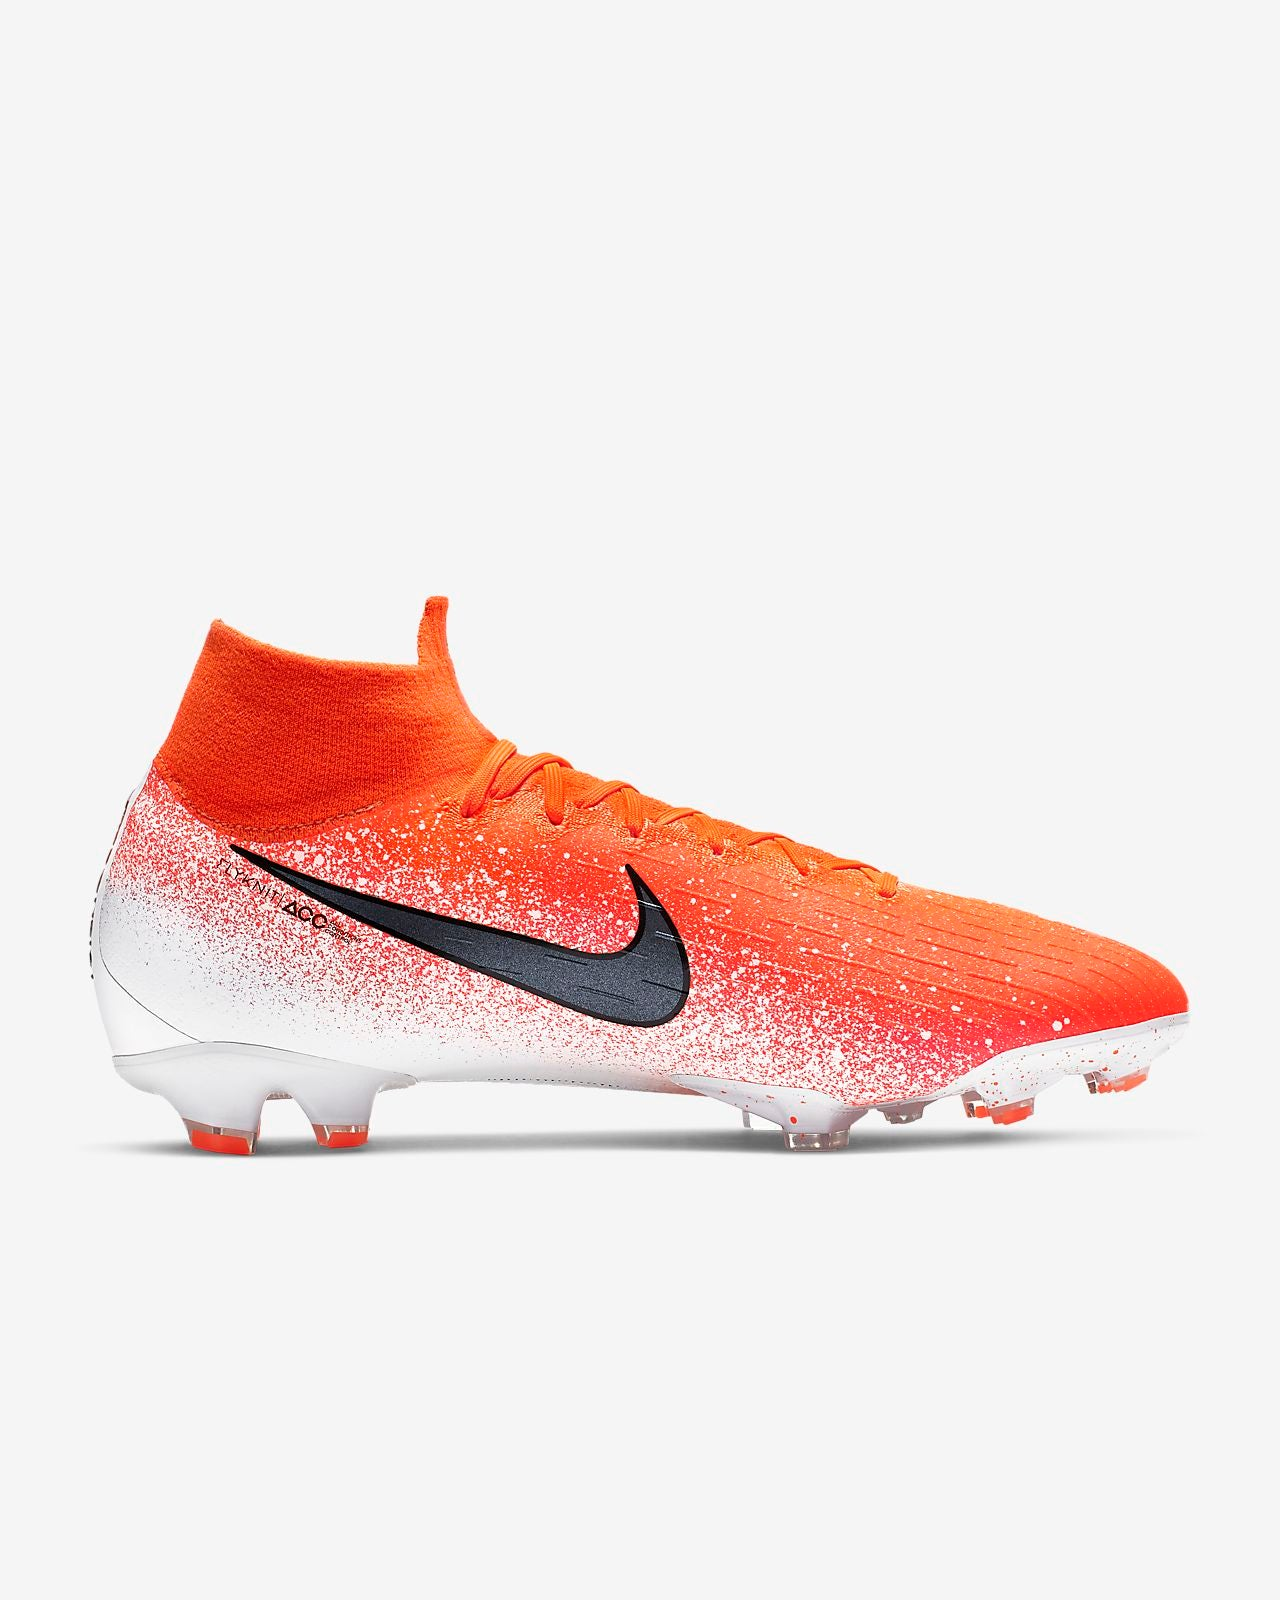 the latest 8c705 b1ebc Nike Superfly 6 Elite FG Firm-Ground Soccer Cleat AH7365-801 ...